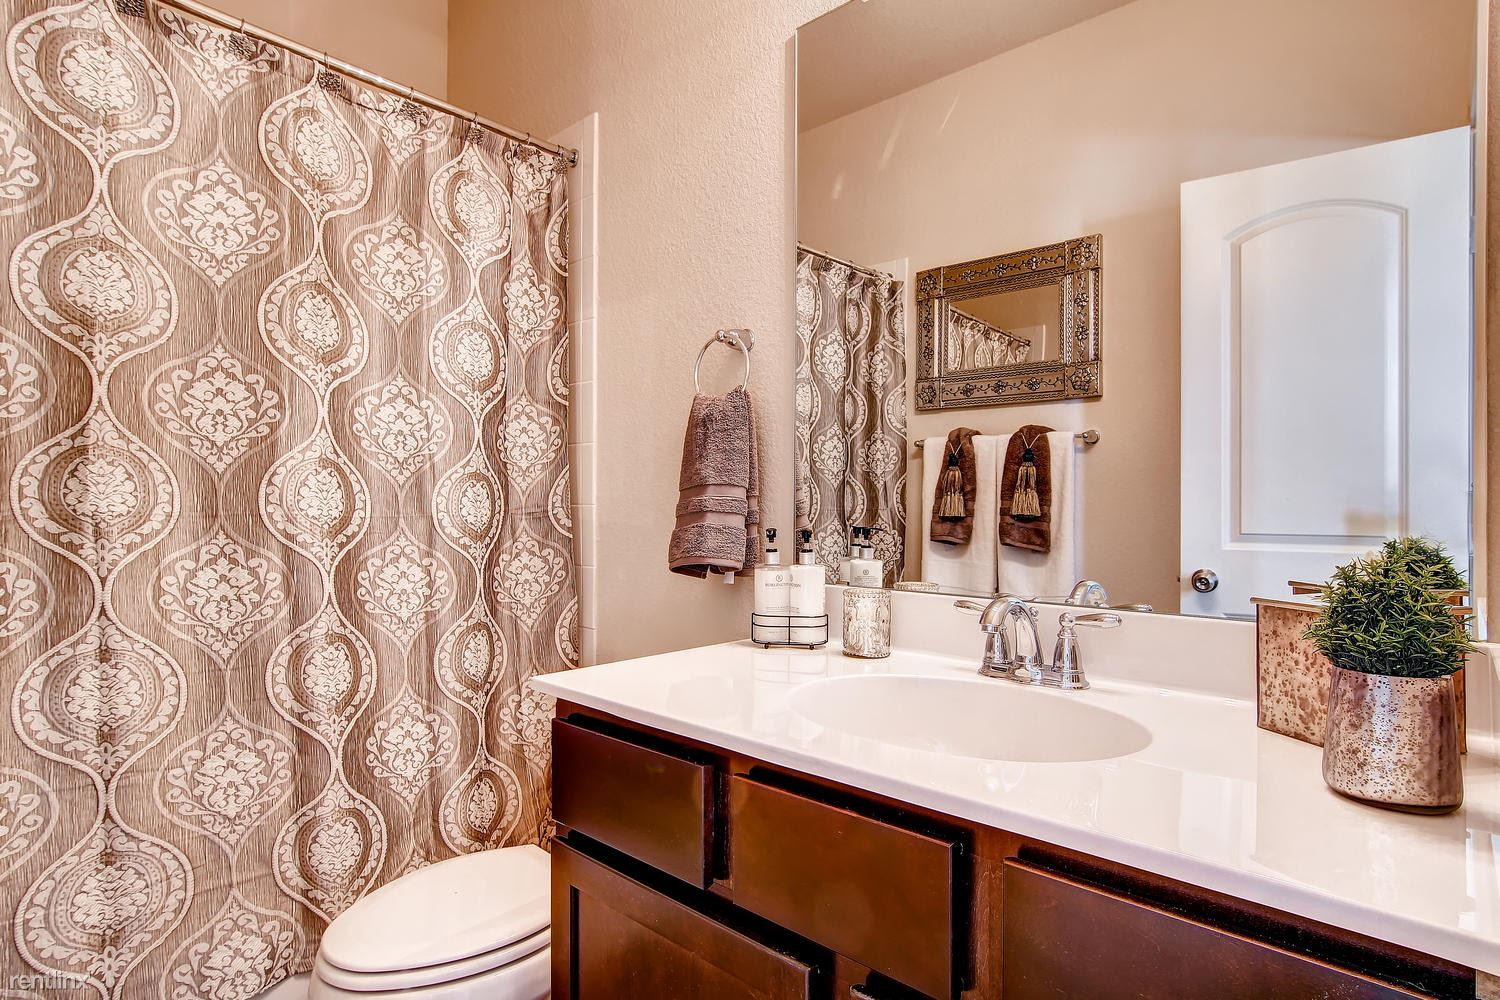 DoubleEagleTownhomes - Model - large-030-Double Eagle Townhomes 1 -1500x1000-72dpi